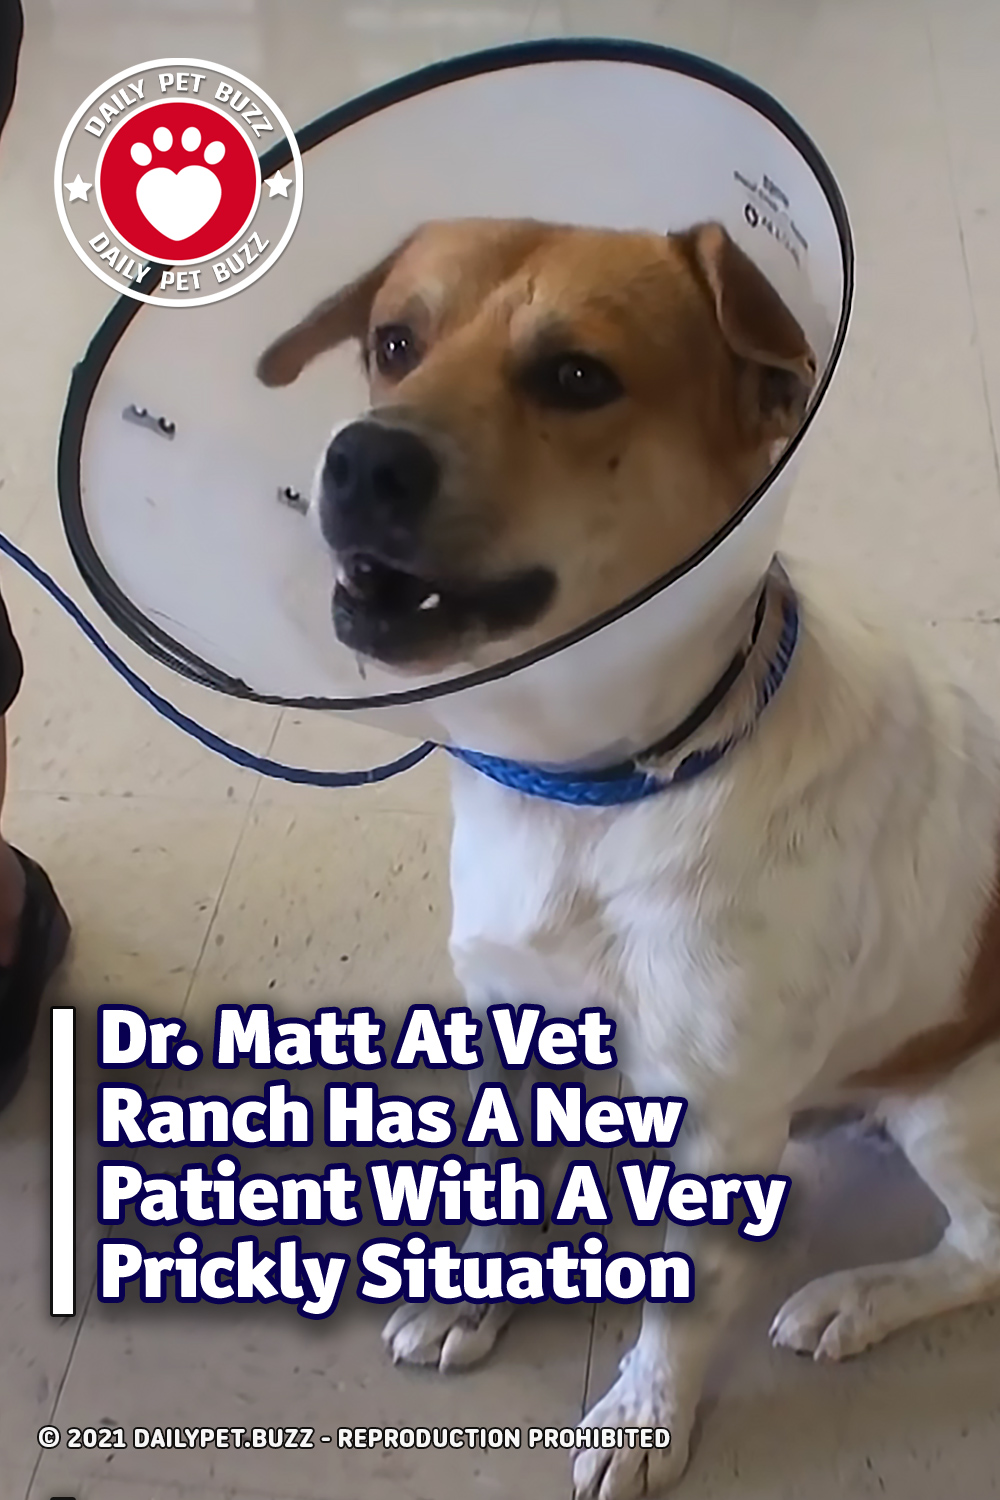 Dr. Matt At Vet Ranch Has A New Patient With A Very Prickly Situation